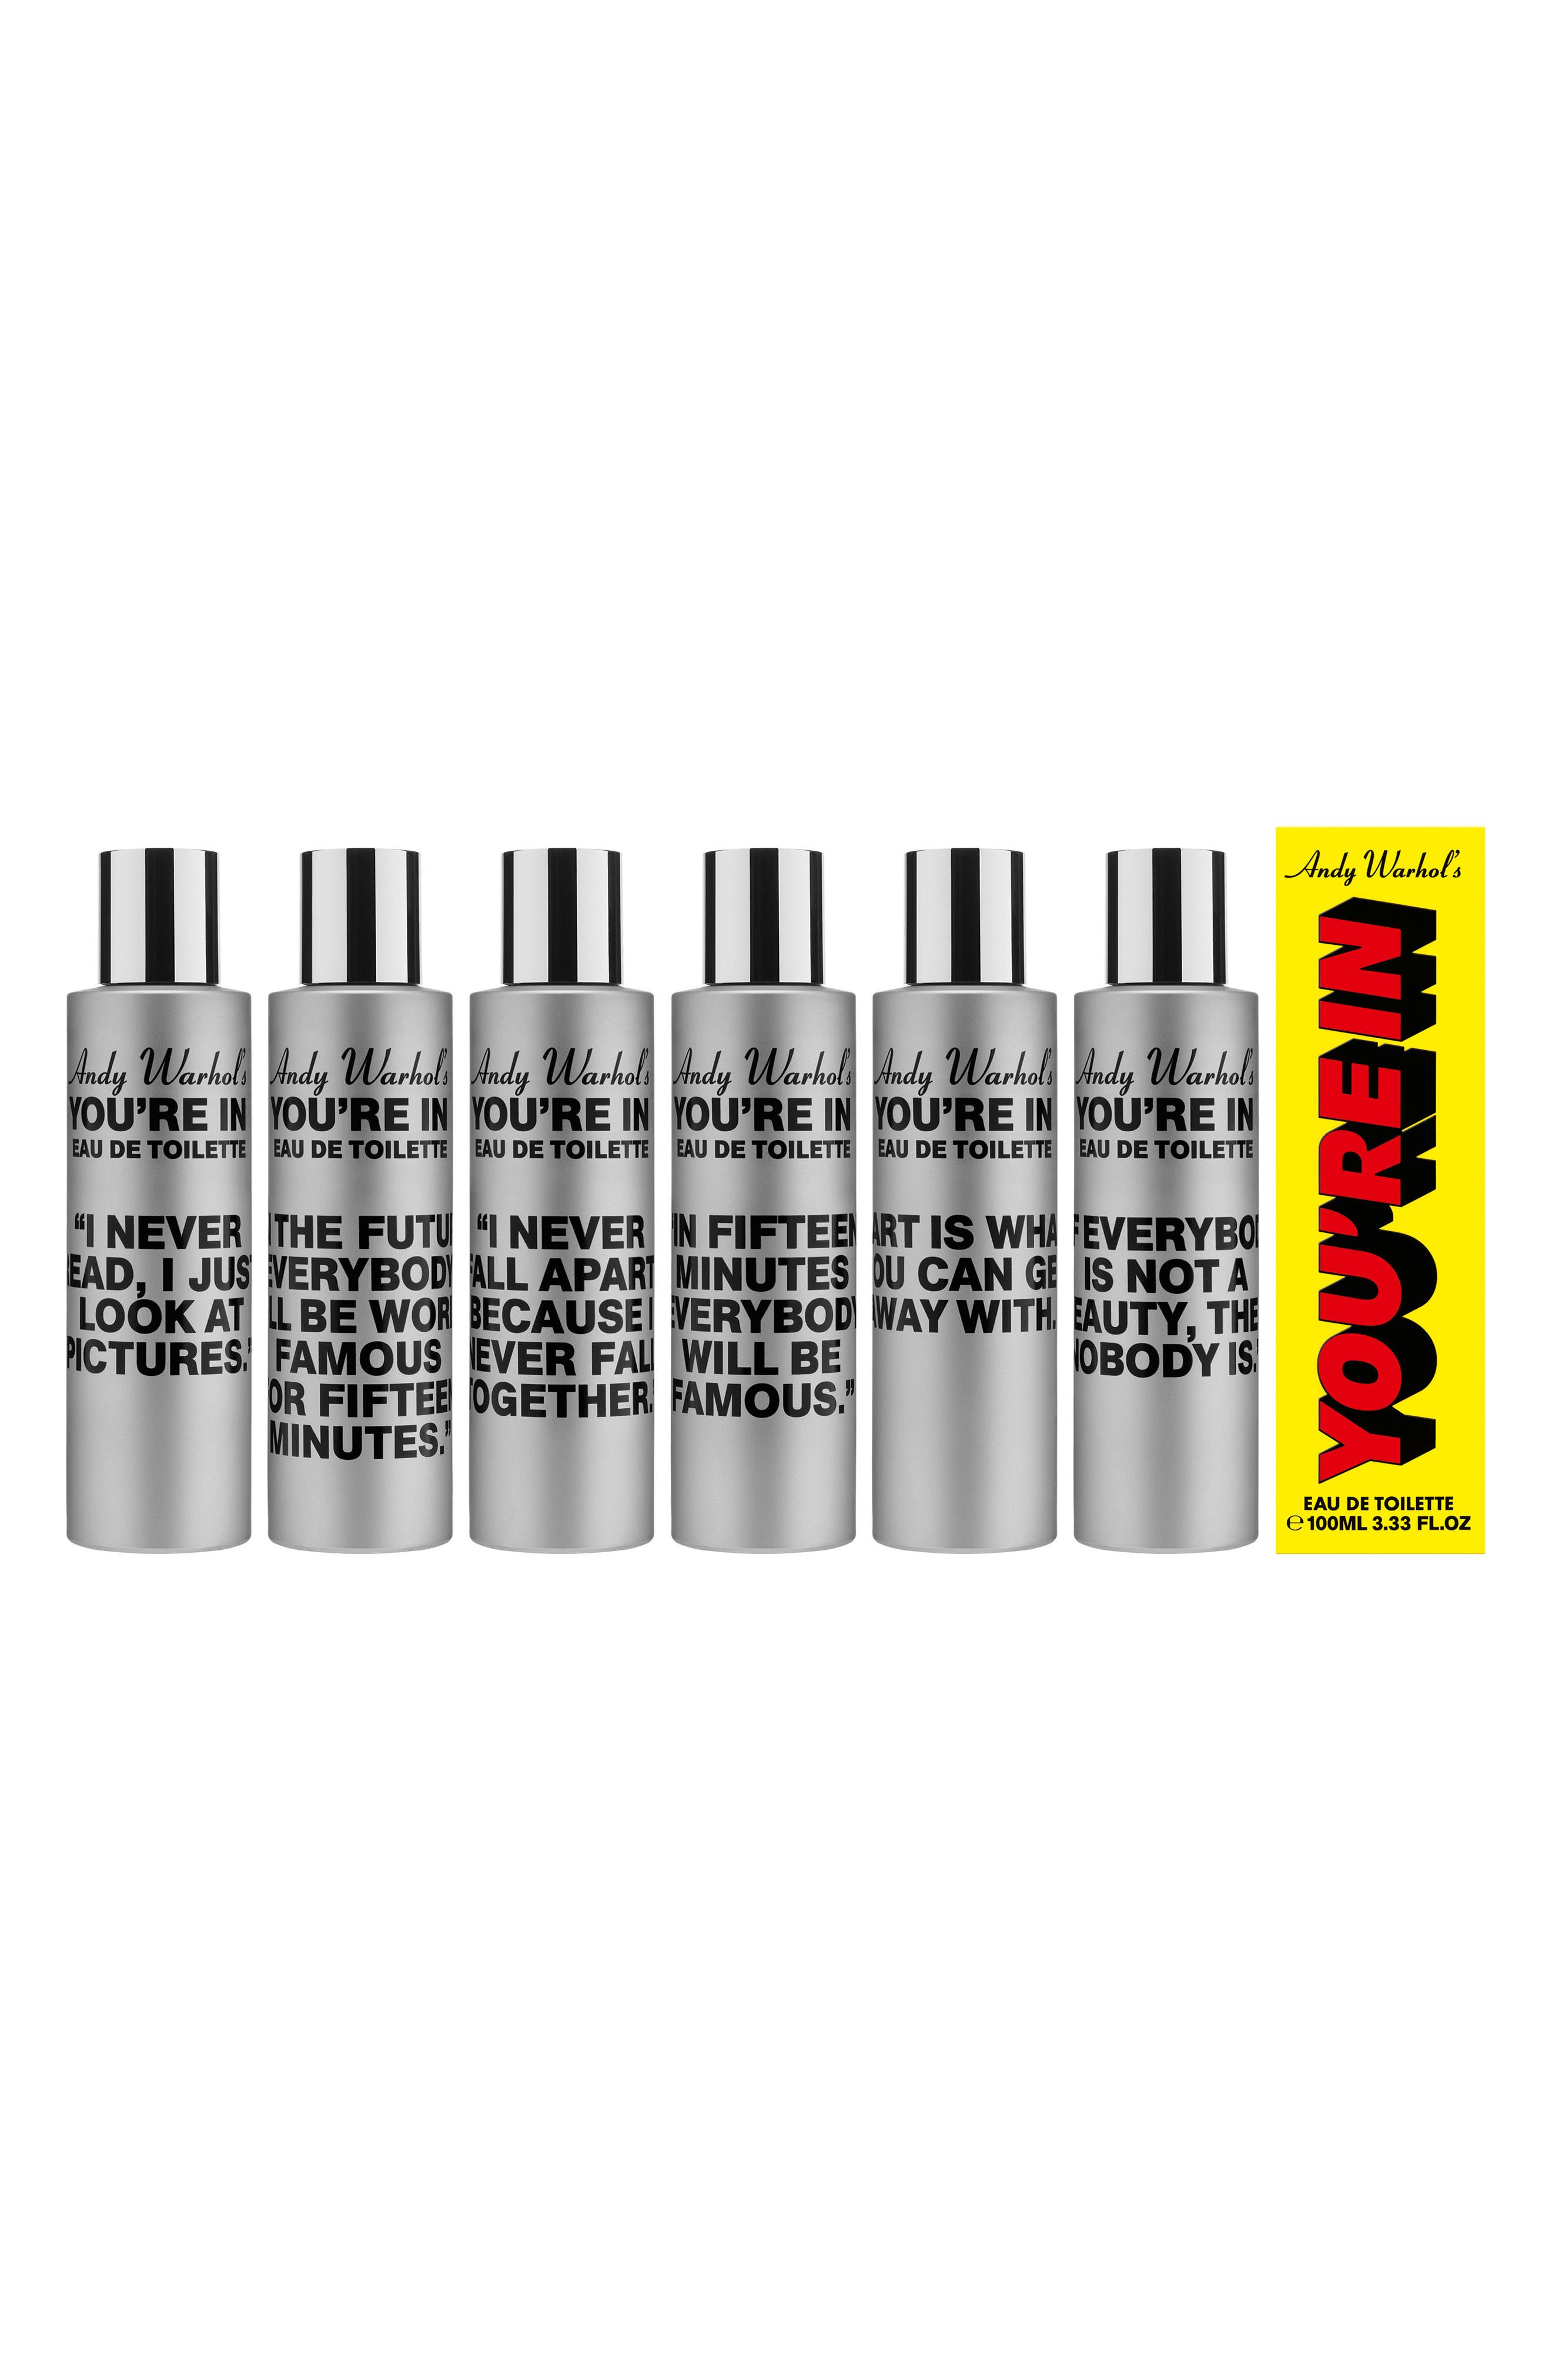 Andy Warhol You're In Unisex Eau de Toilette,                             Alternate thumbnail 8, color,                             IF EVERYBODY IS